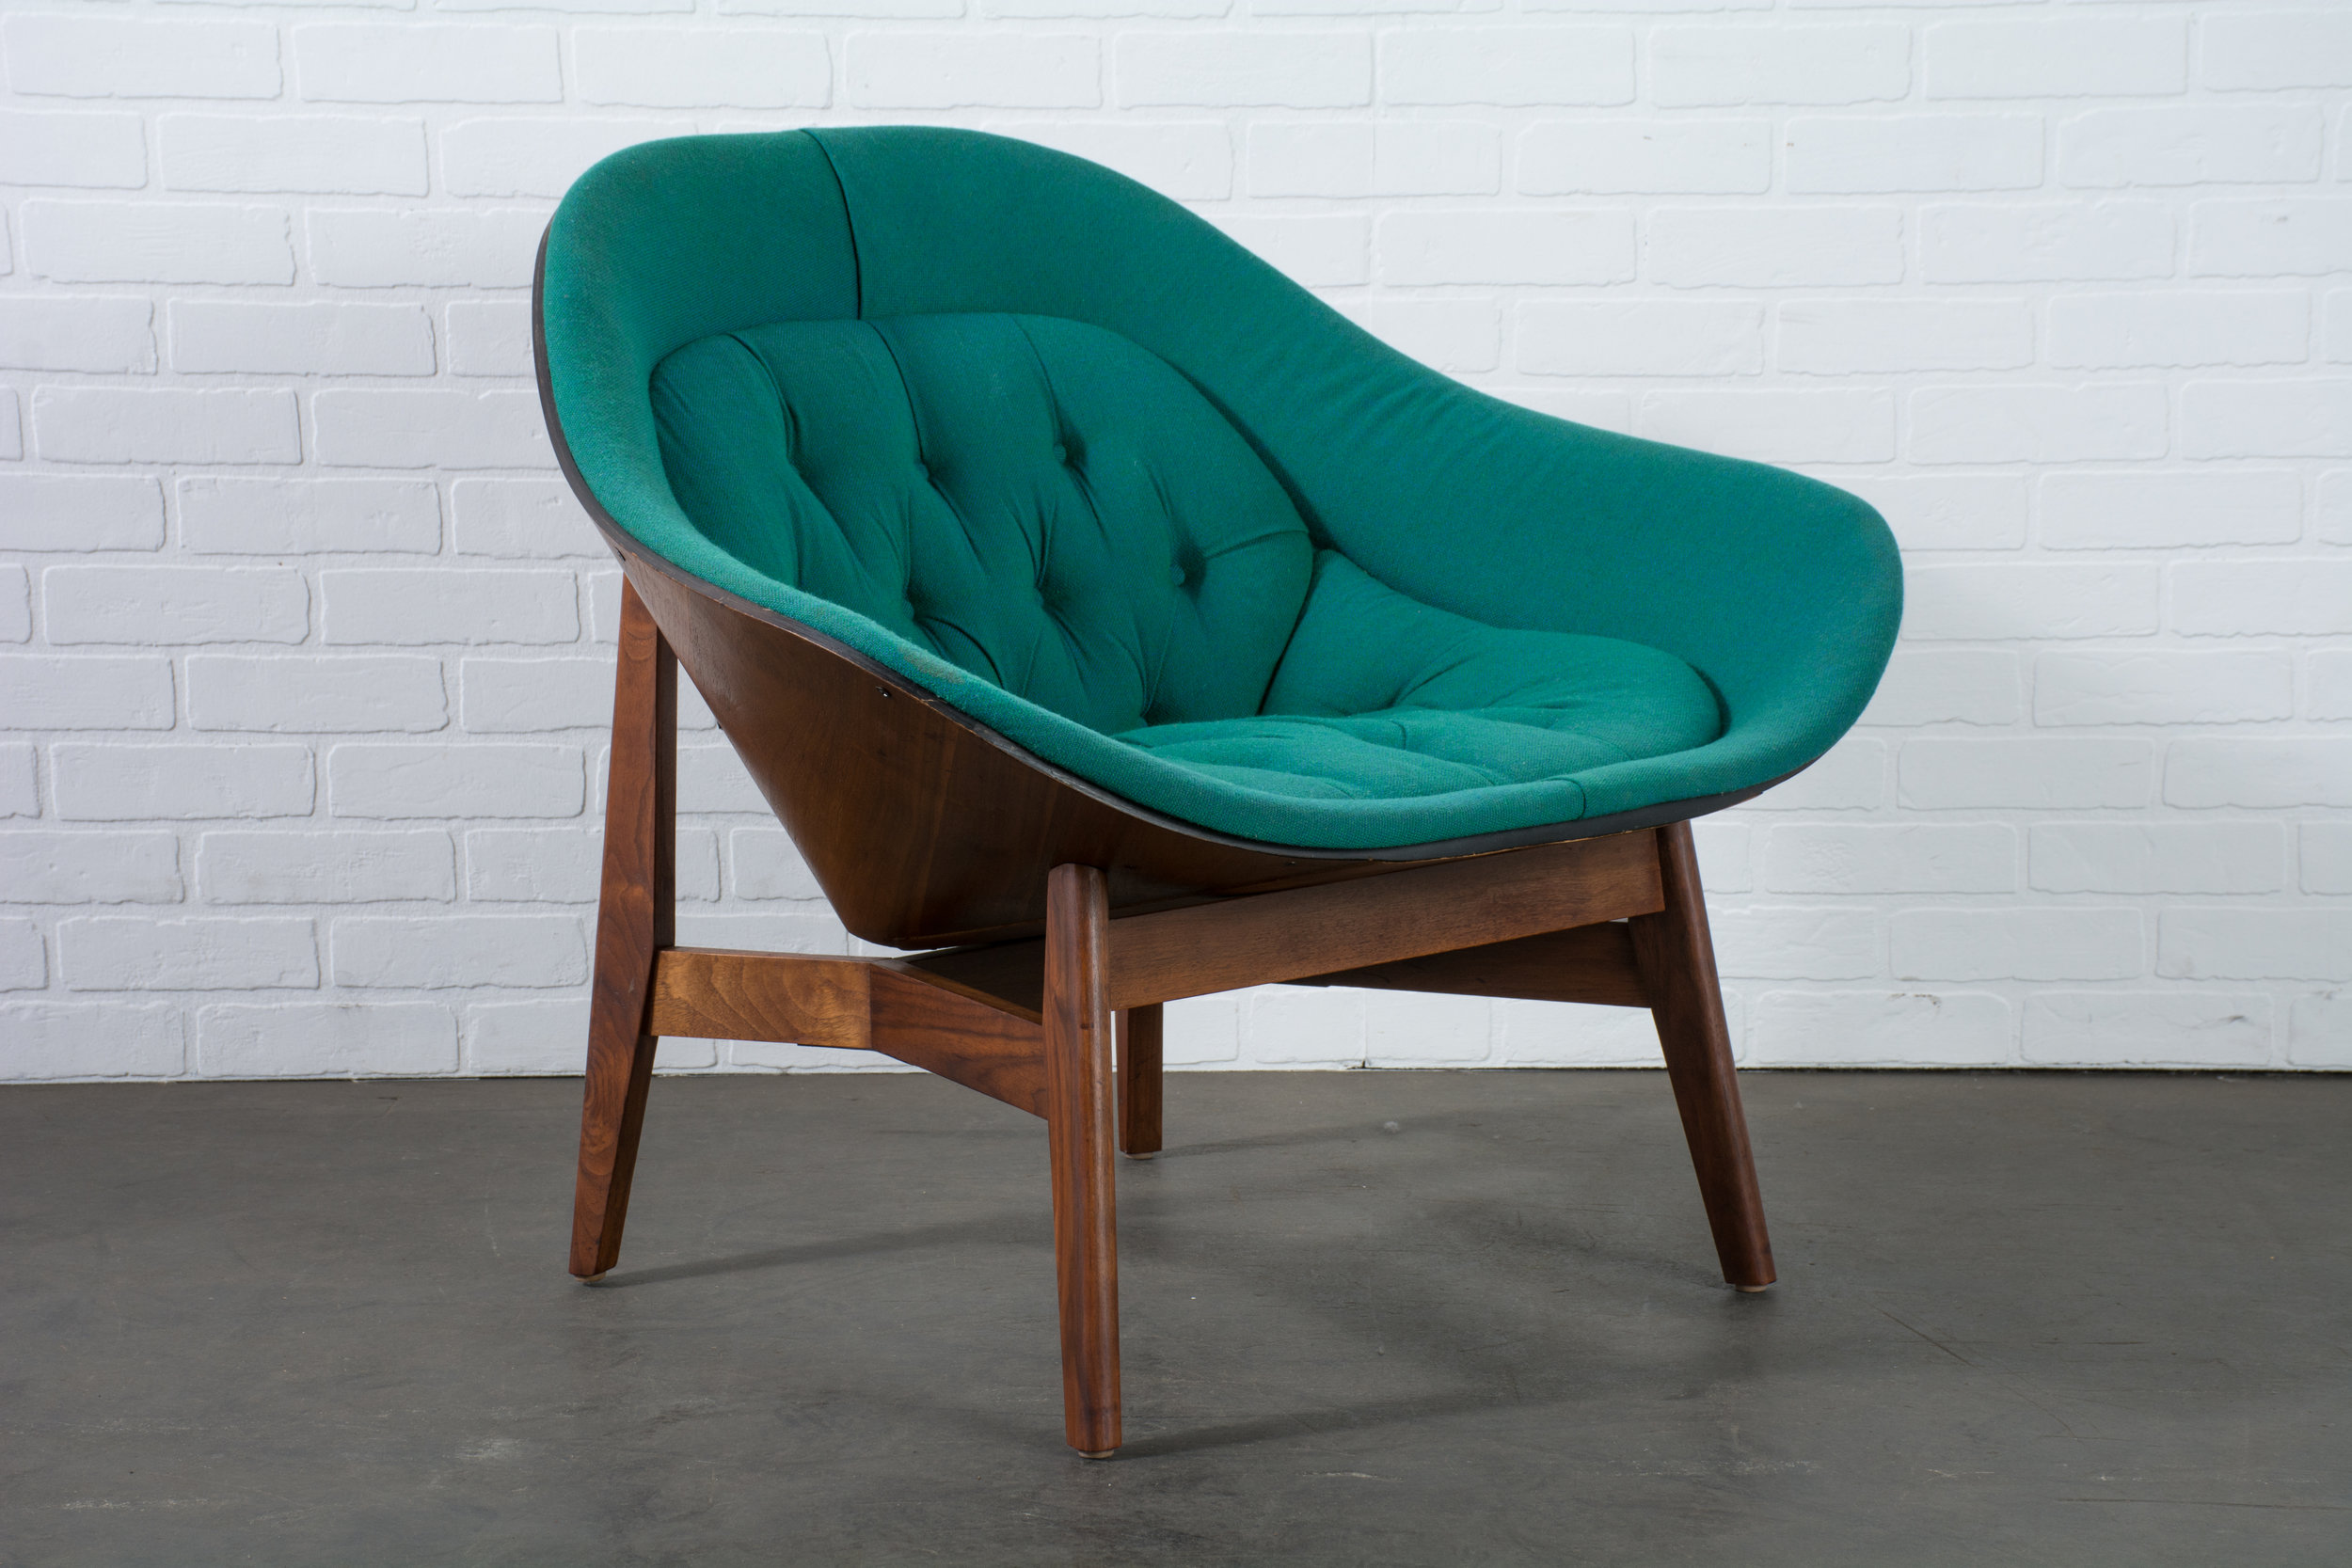 Vintage Mid-Century Lounge Chair by George Mulhauser for Plycraft